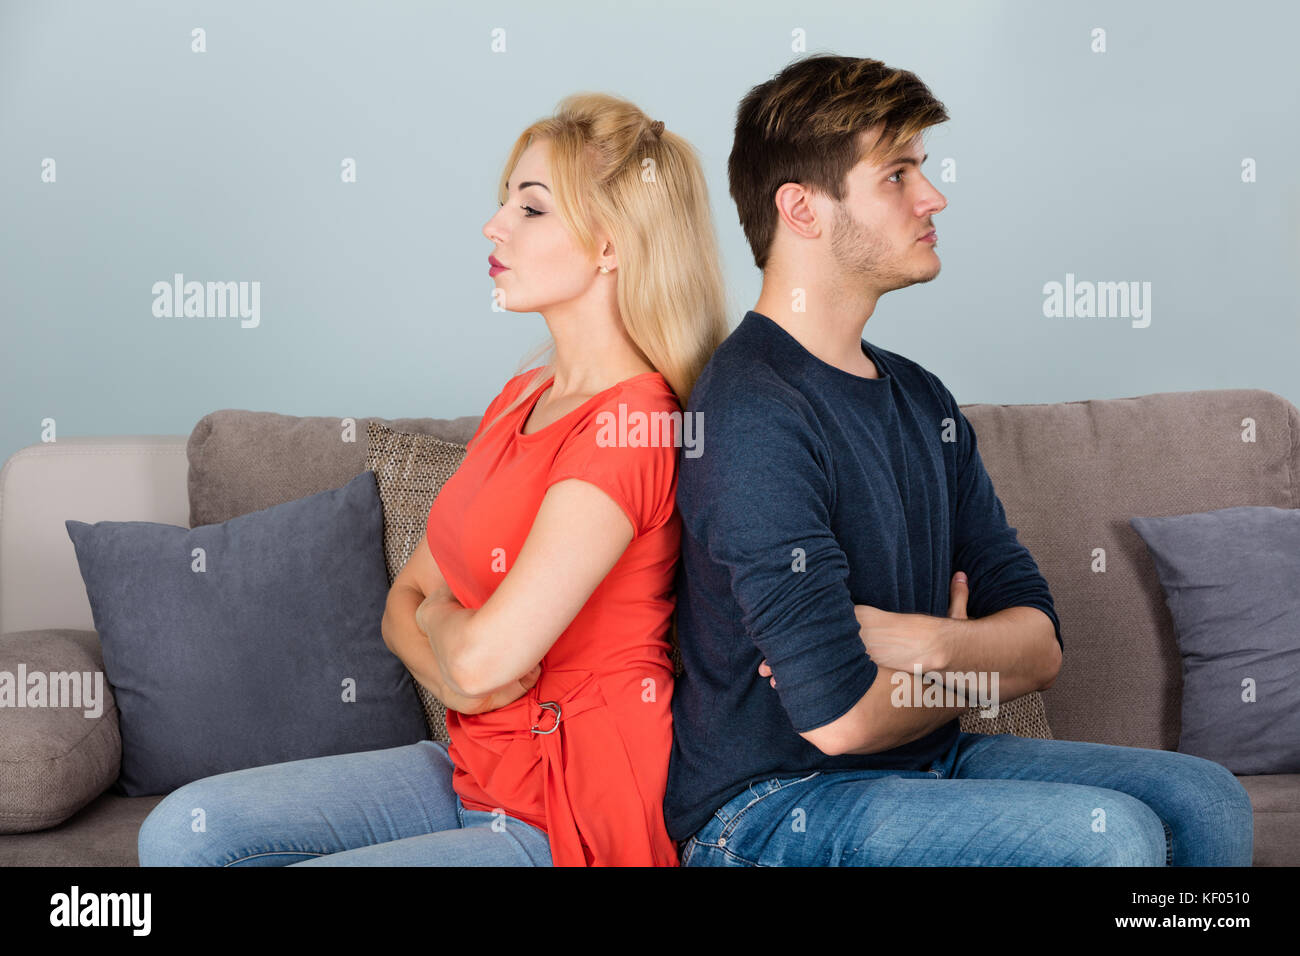 Young Sad Divorcing Couple With Arms Crossed Sitting On Sofa After Quarrel At Home - Stock Image